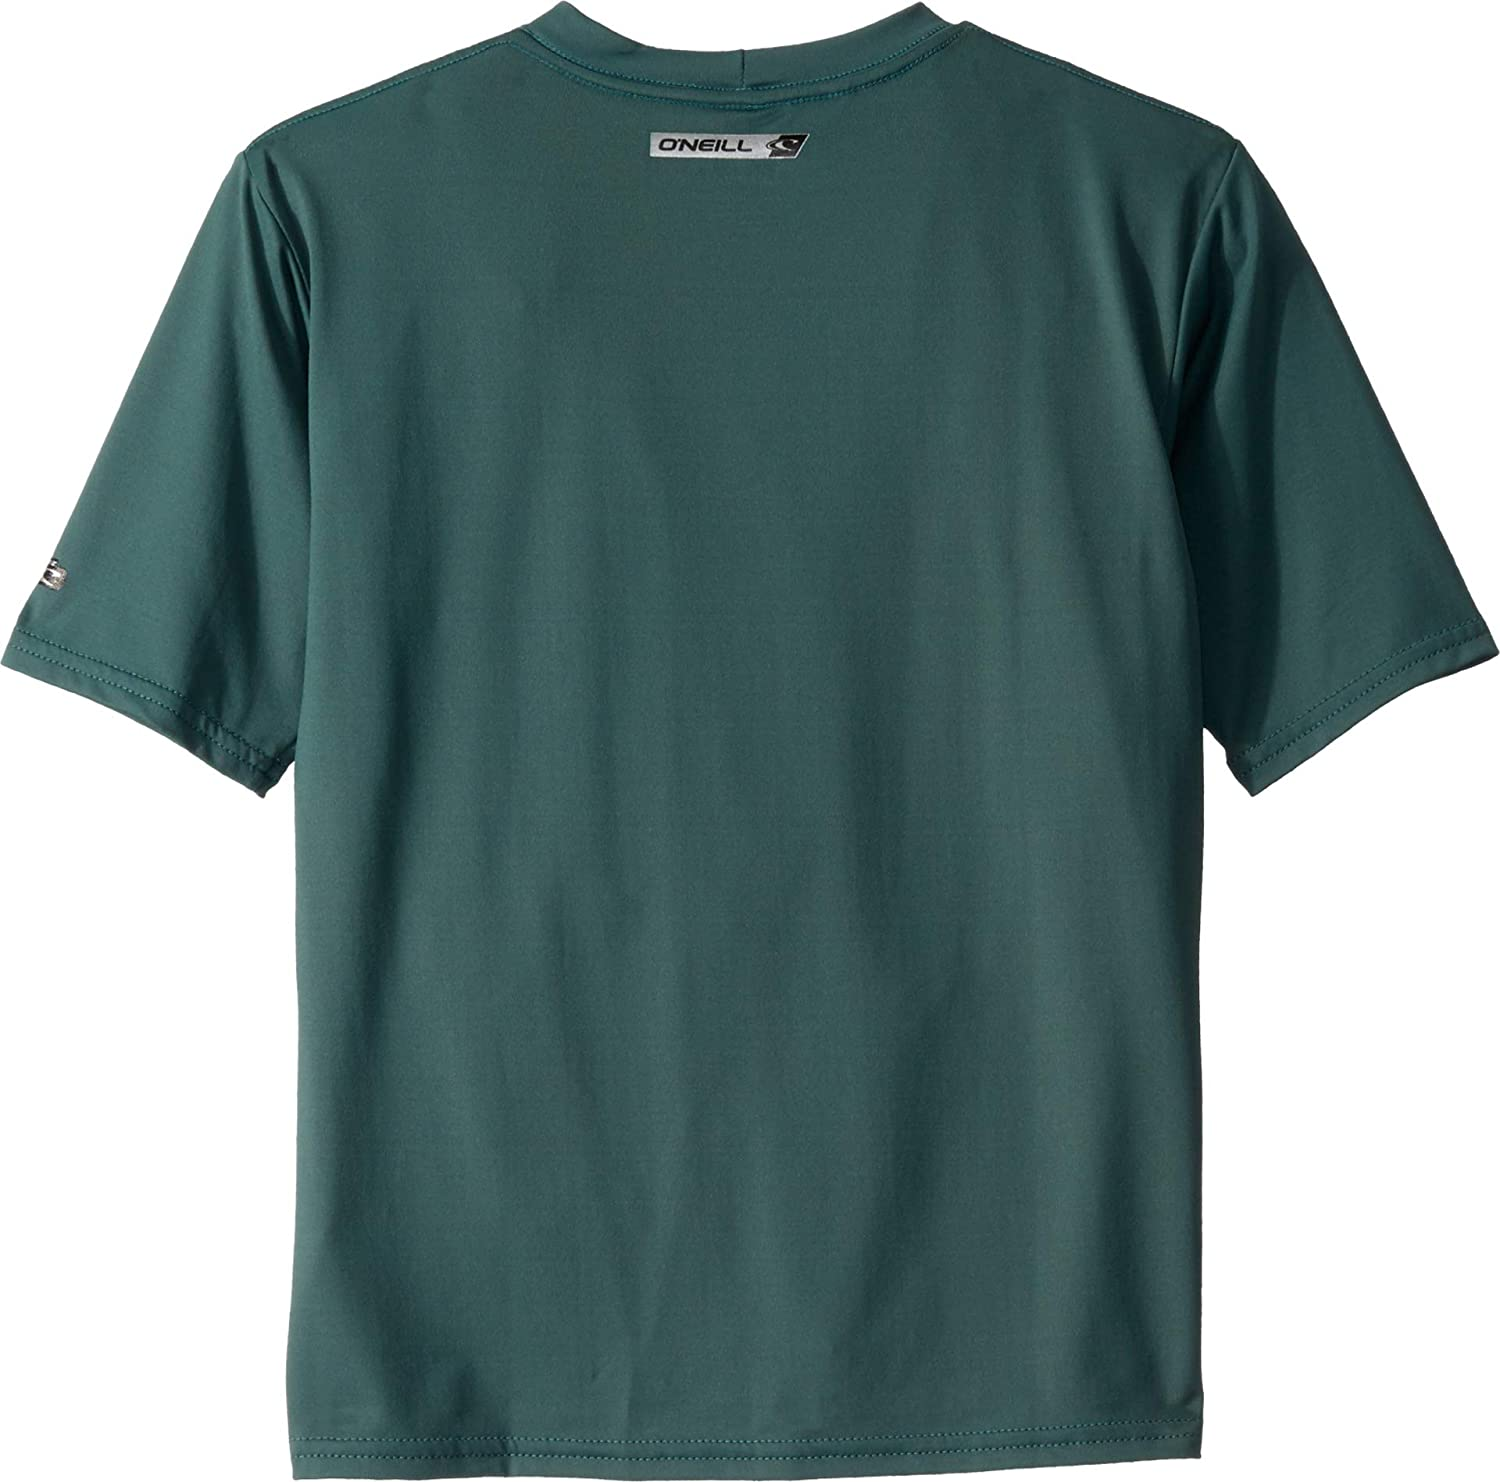 Size 14 ONeill Wetsuits Youth Premium Skins Short Sleeve Sun Shirt Teal